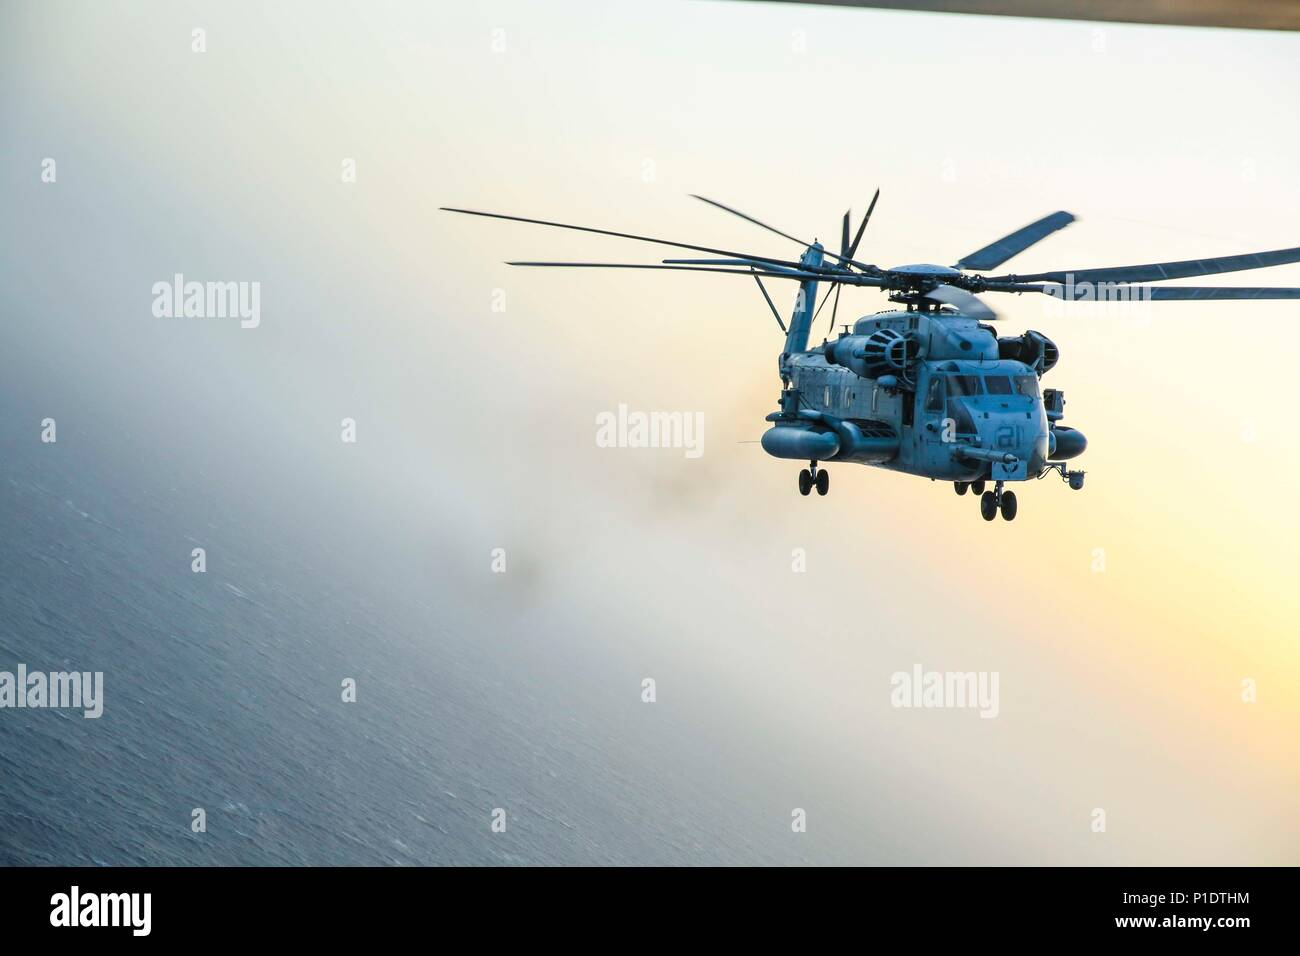 A U.S. Marine Corps CH-53E Super Stallion with Marine Medium Tiltrotor Squadron (VMM) 162 (Reinforced) flies in formation with an MV-22B Osprey, June 10, 2018, in the U.S. 5th Fleet Area of Operations. The 26th MEU and Iwo Jima amphibious ready group are deployed to the U.S. 5th Fleet of operations in support of maritime security operations to reassure allies and partners and preserve the freedom of navigation and the free flow of commerce in the region. (U.S. Marine Corps photo by Capt. Natalie B. Poggemeyer/Released) Stock Photo